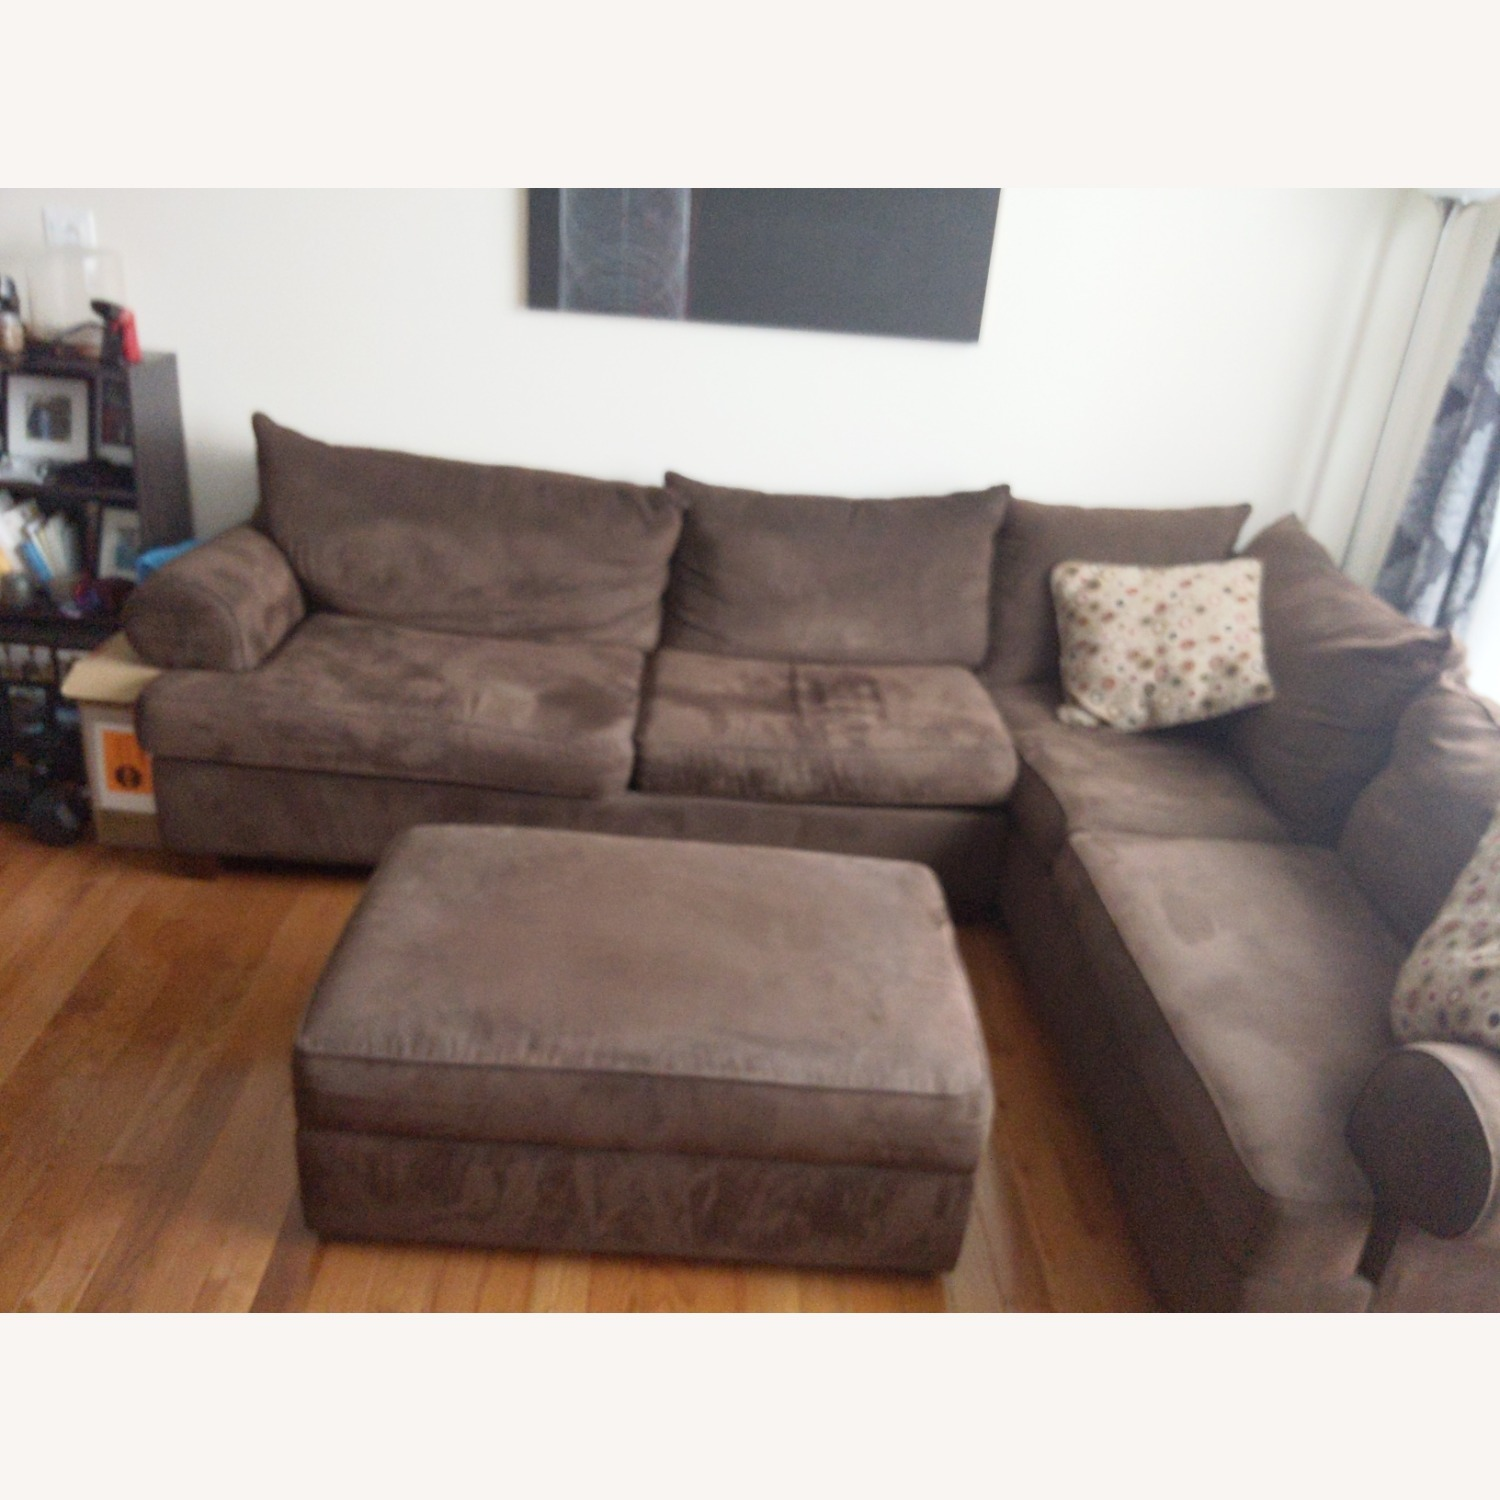 Raymour & Flanigan 2 Piece Sectional - image-2